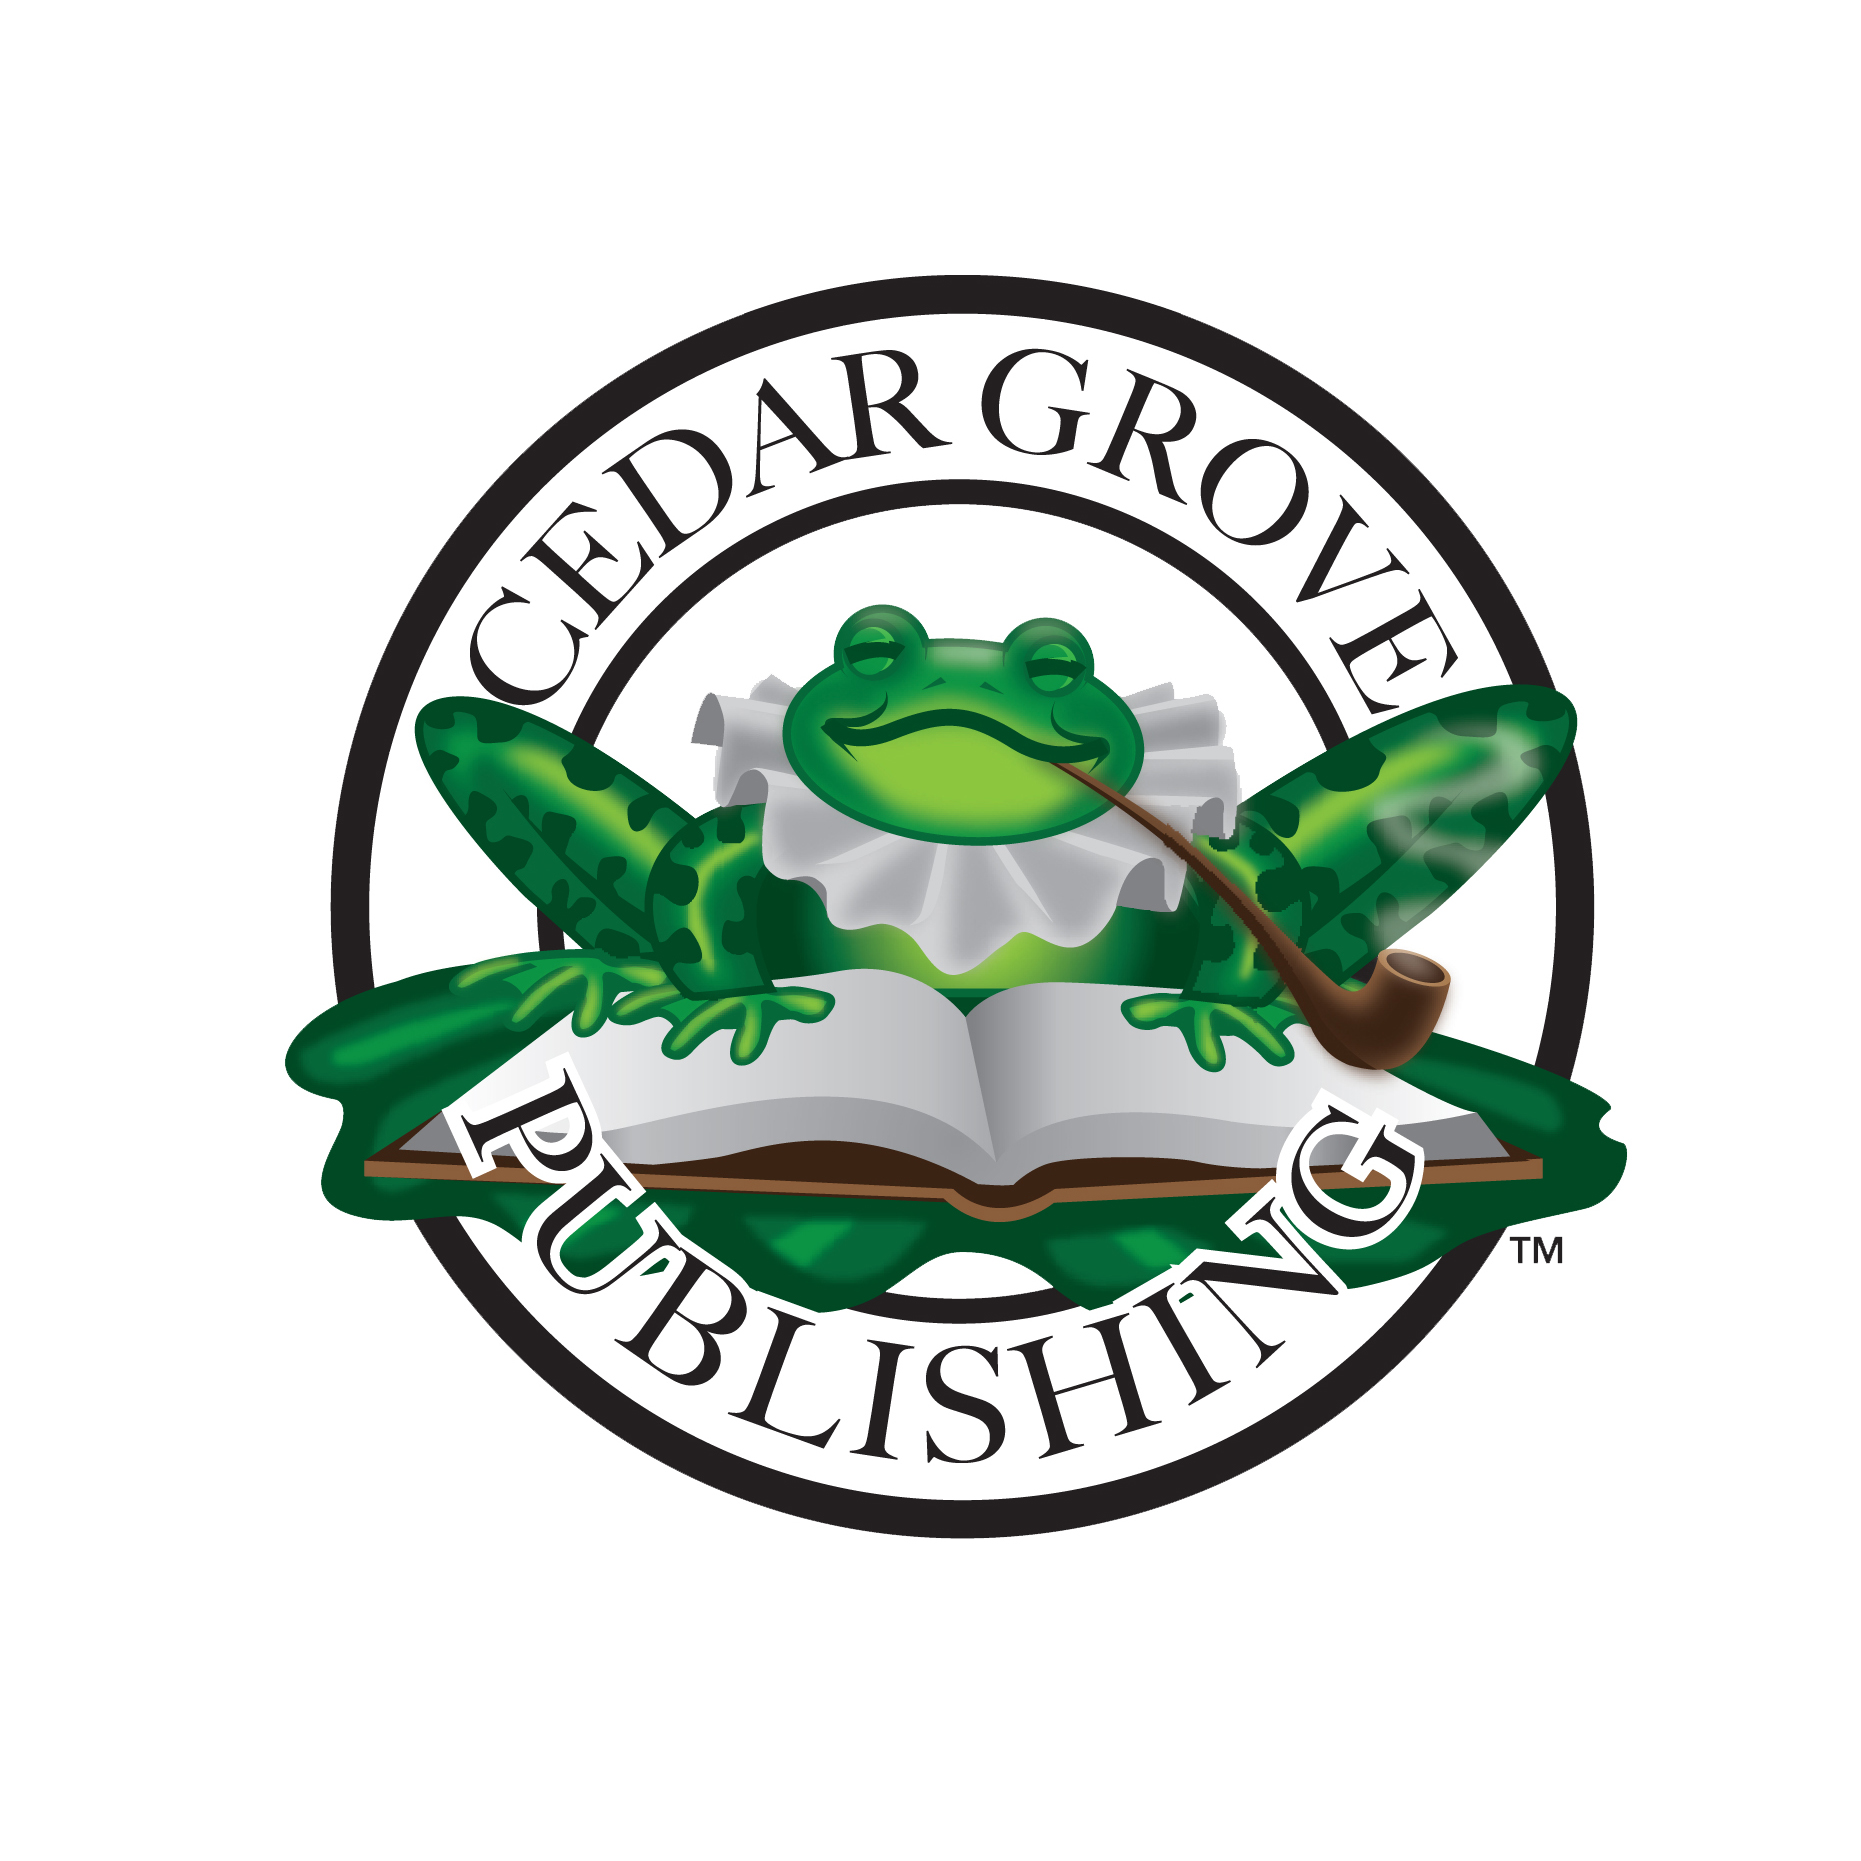 Cedar Grove Publishing